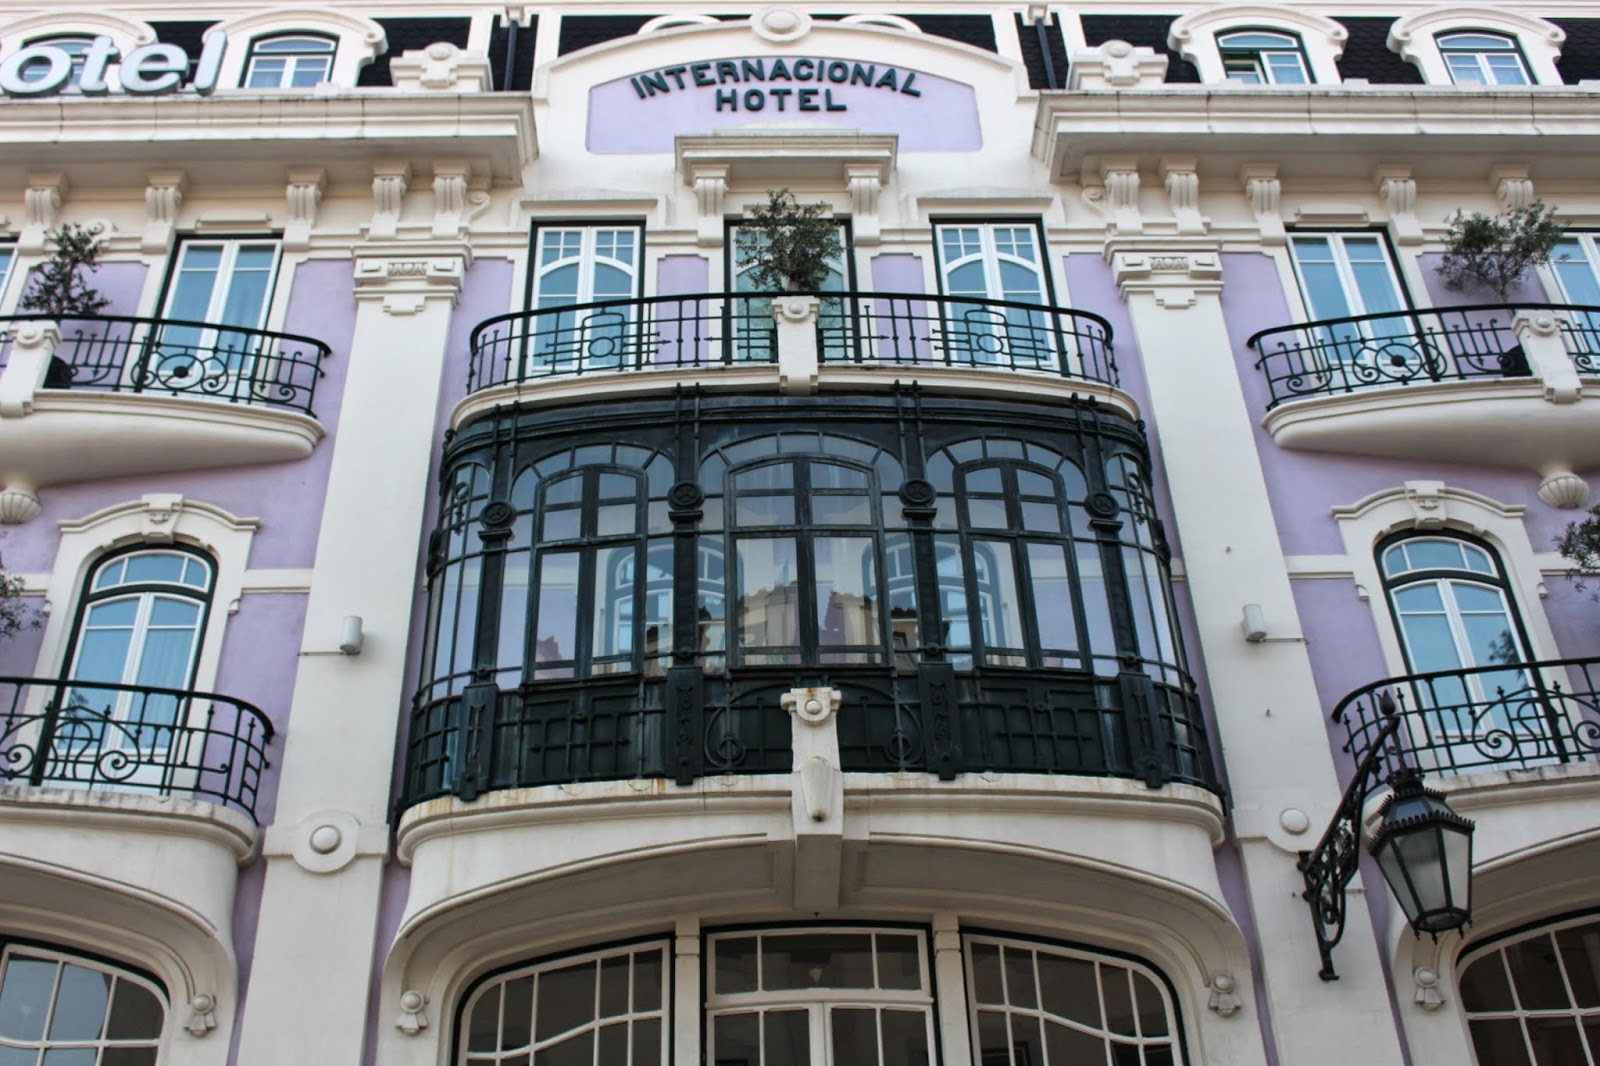 Narrogeographic internacional design hotel lisboa el for Internacional design hotel 4